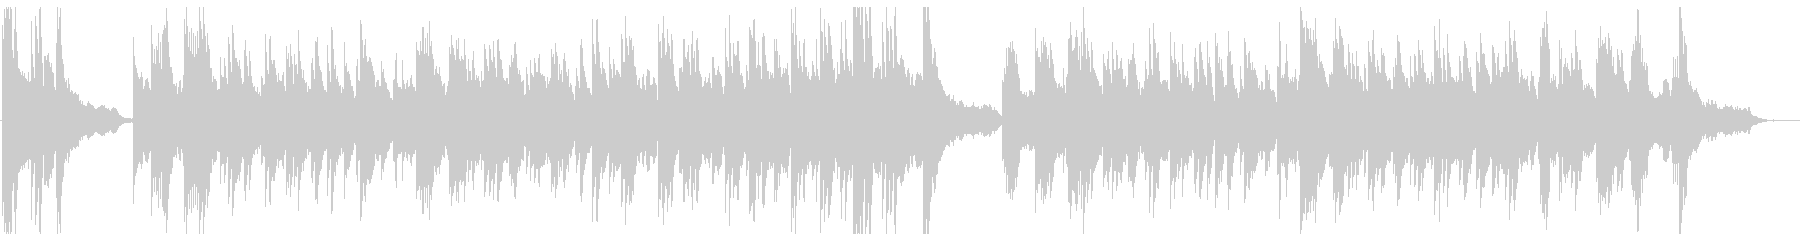 Refreshing wedding style BGM's unreproduced waveform